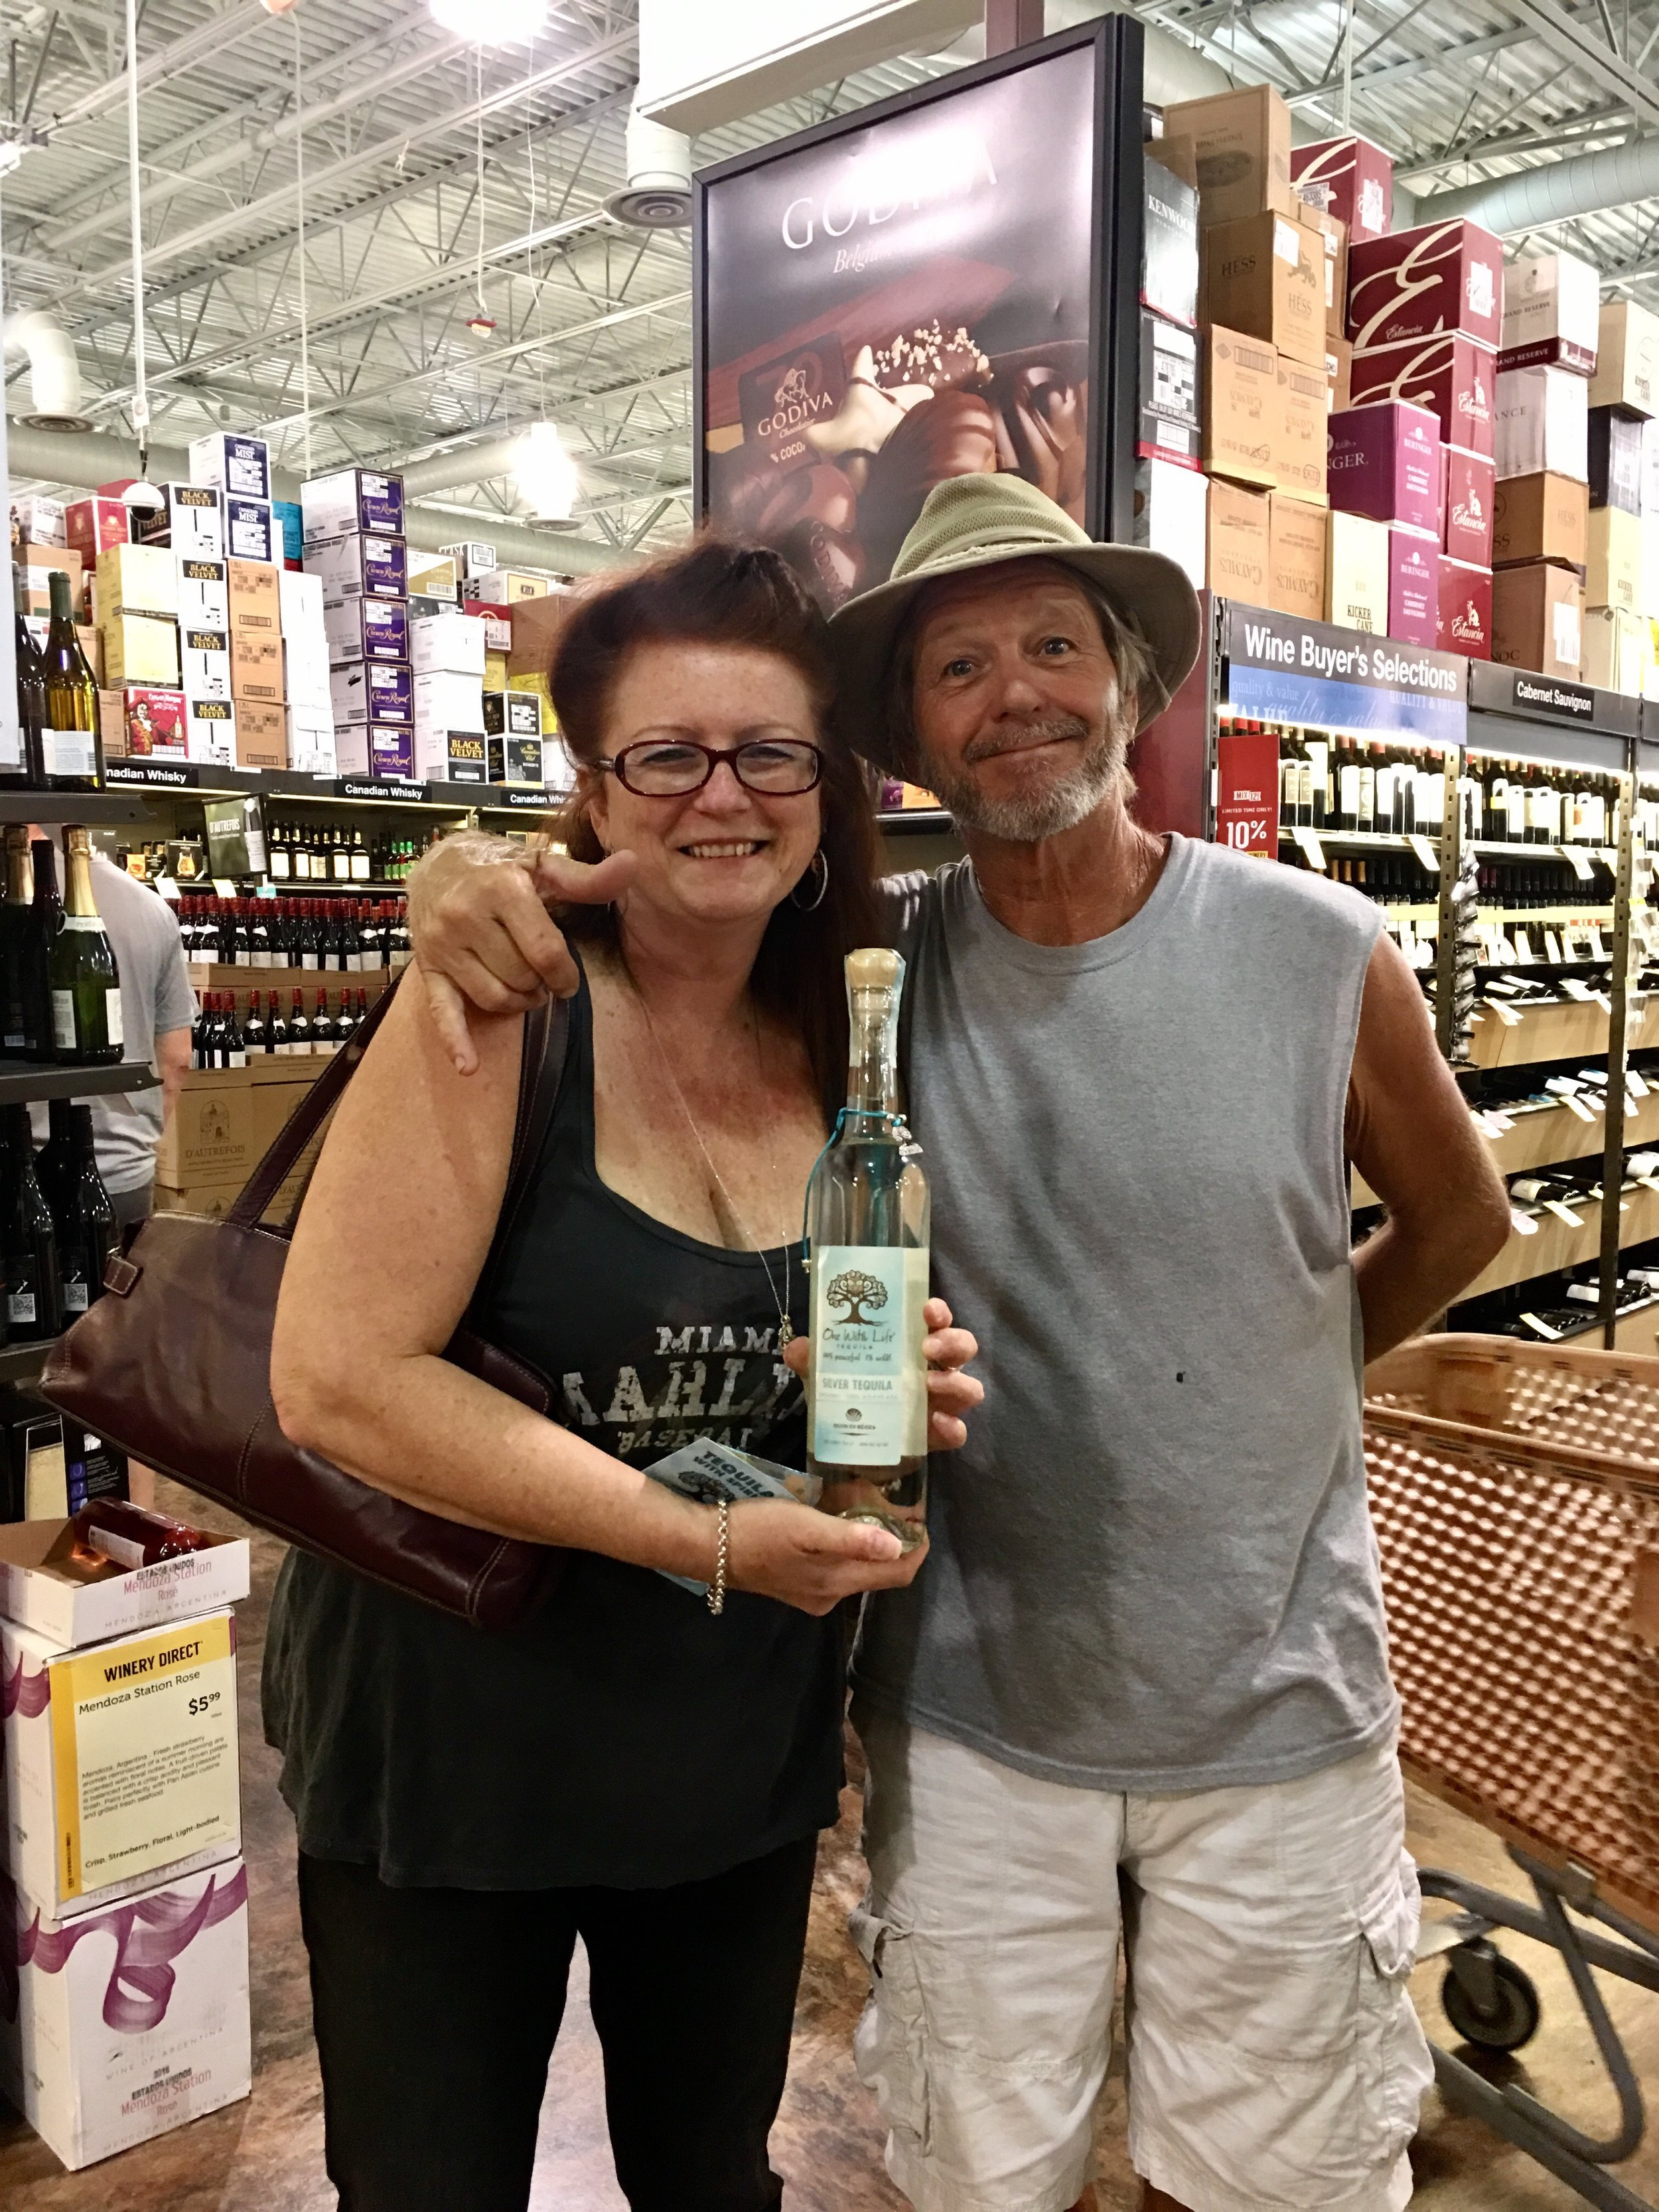 Total Wine Boynton Beach